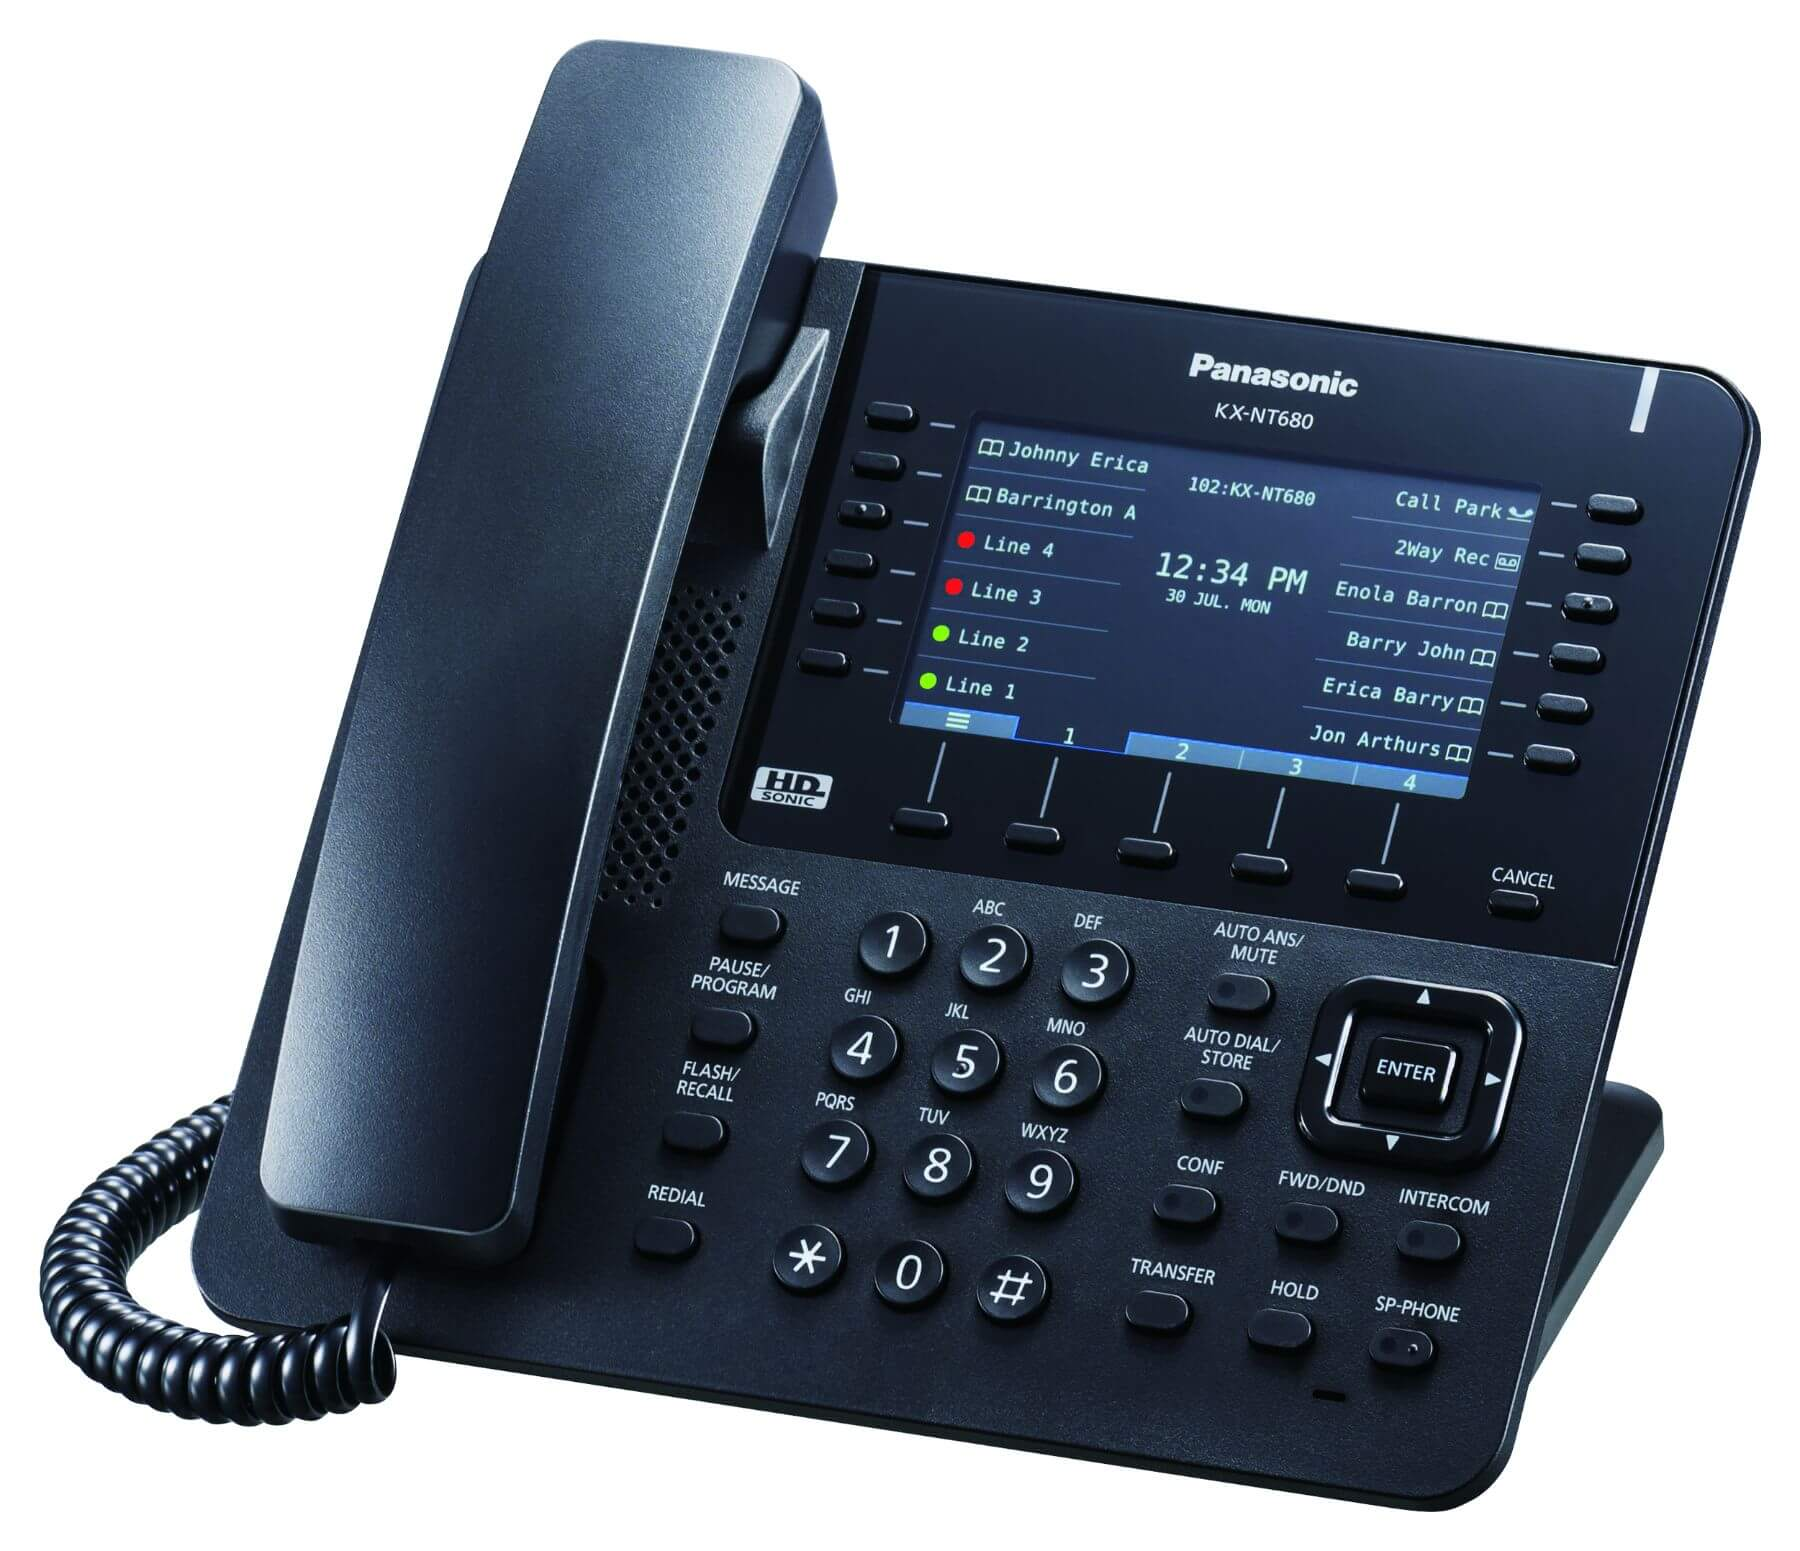 Panasonic KX-NT680 IP Phone Image